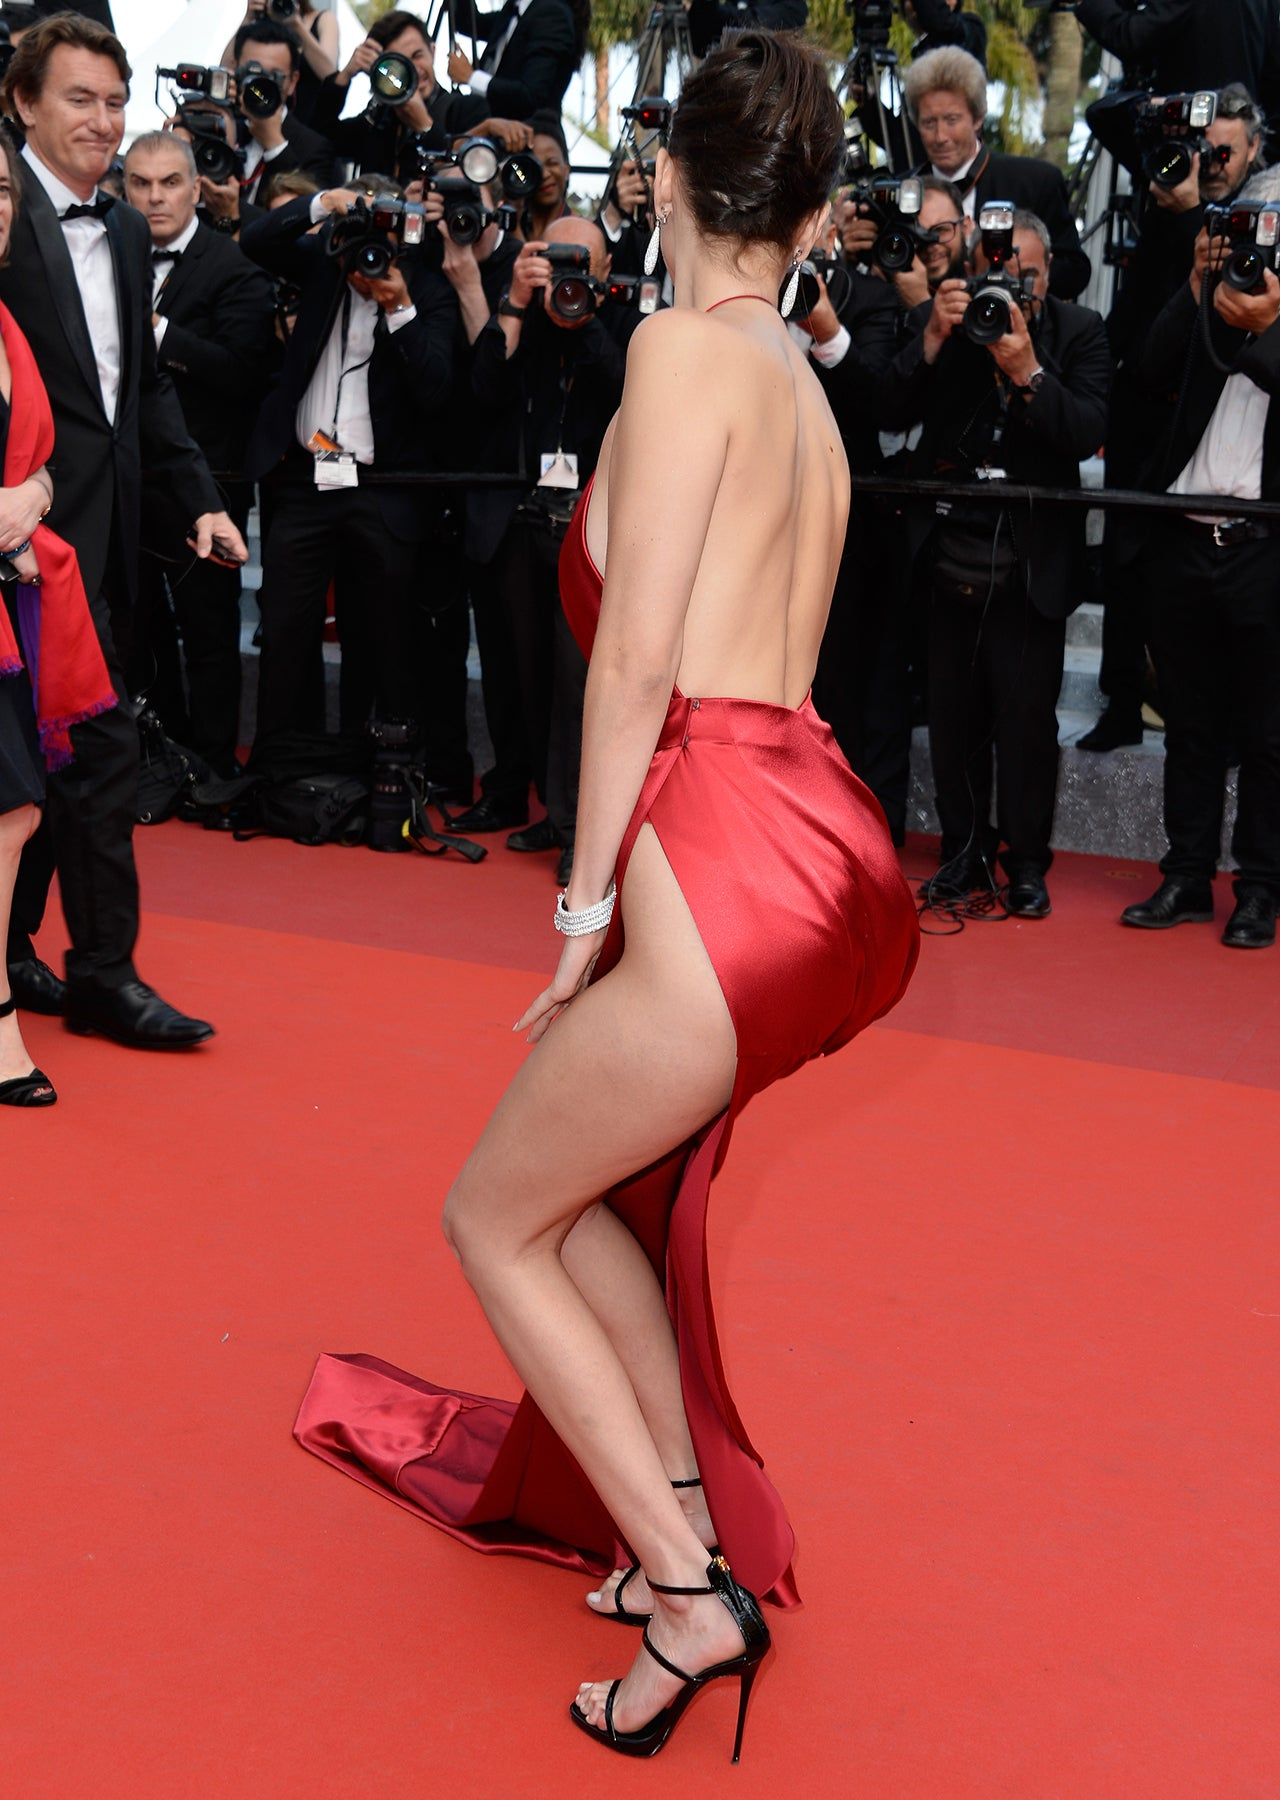 Bella Hadid Barely Avoids a Wardrobe Malfunction in Nearly Naked